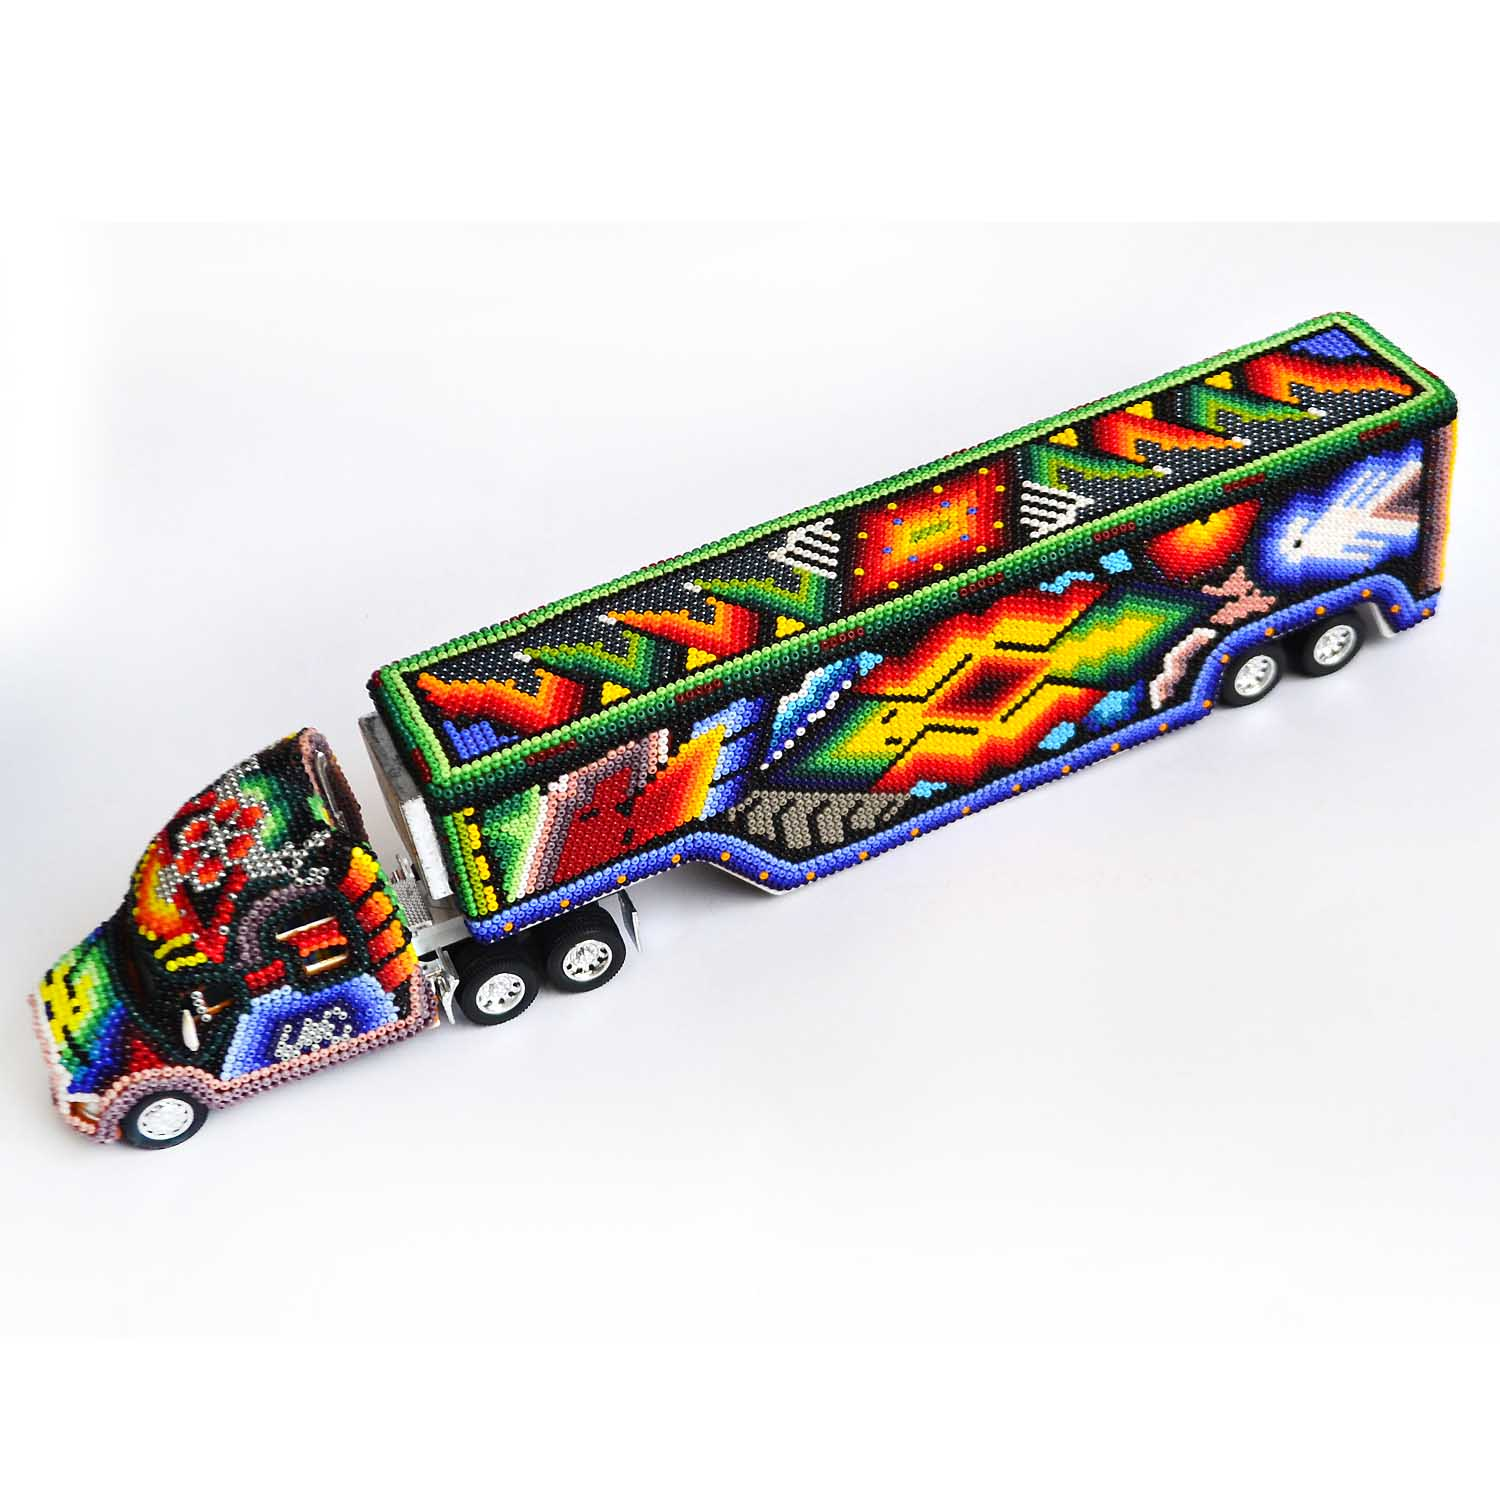 Trailer - Huichol art